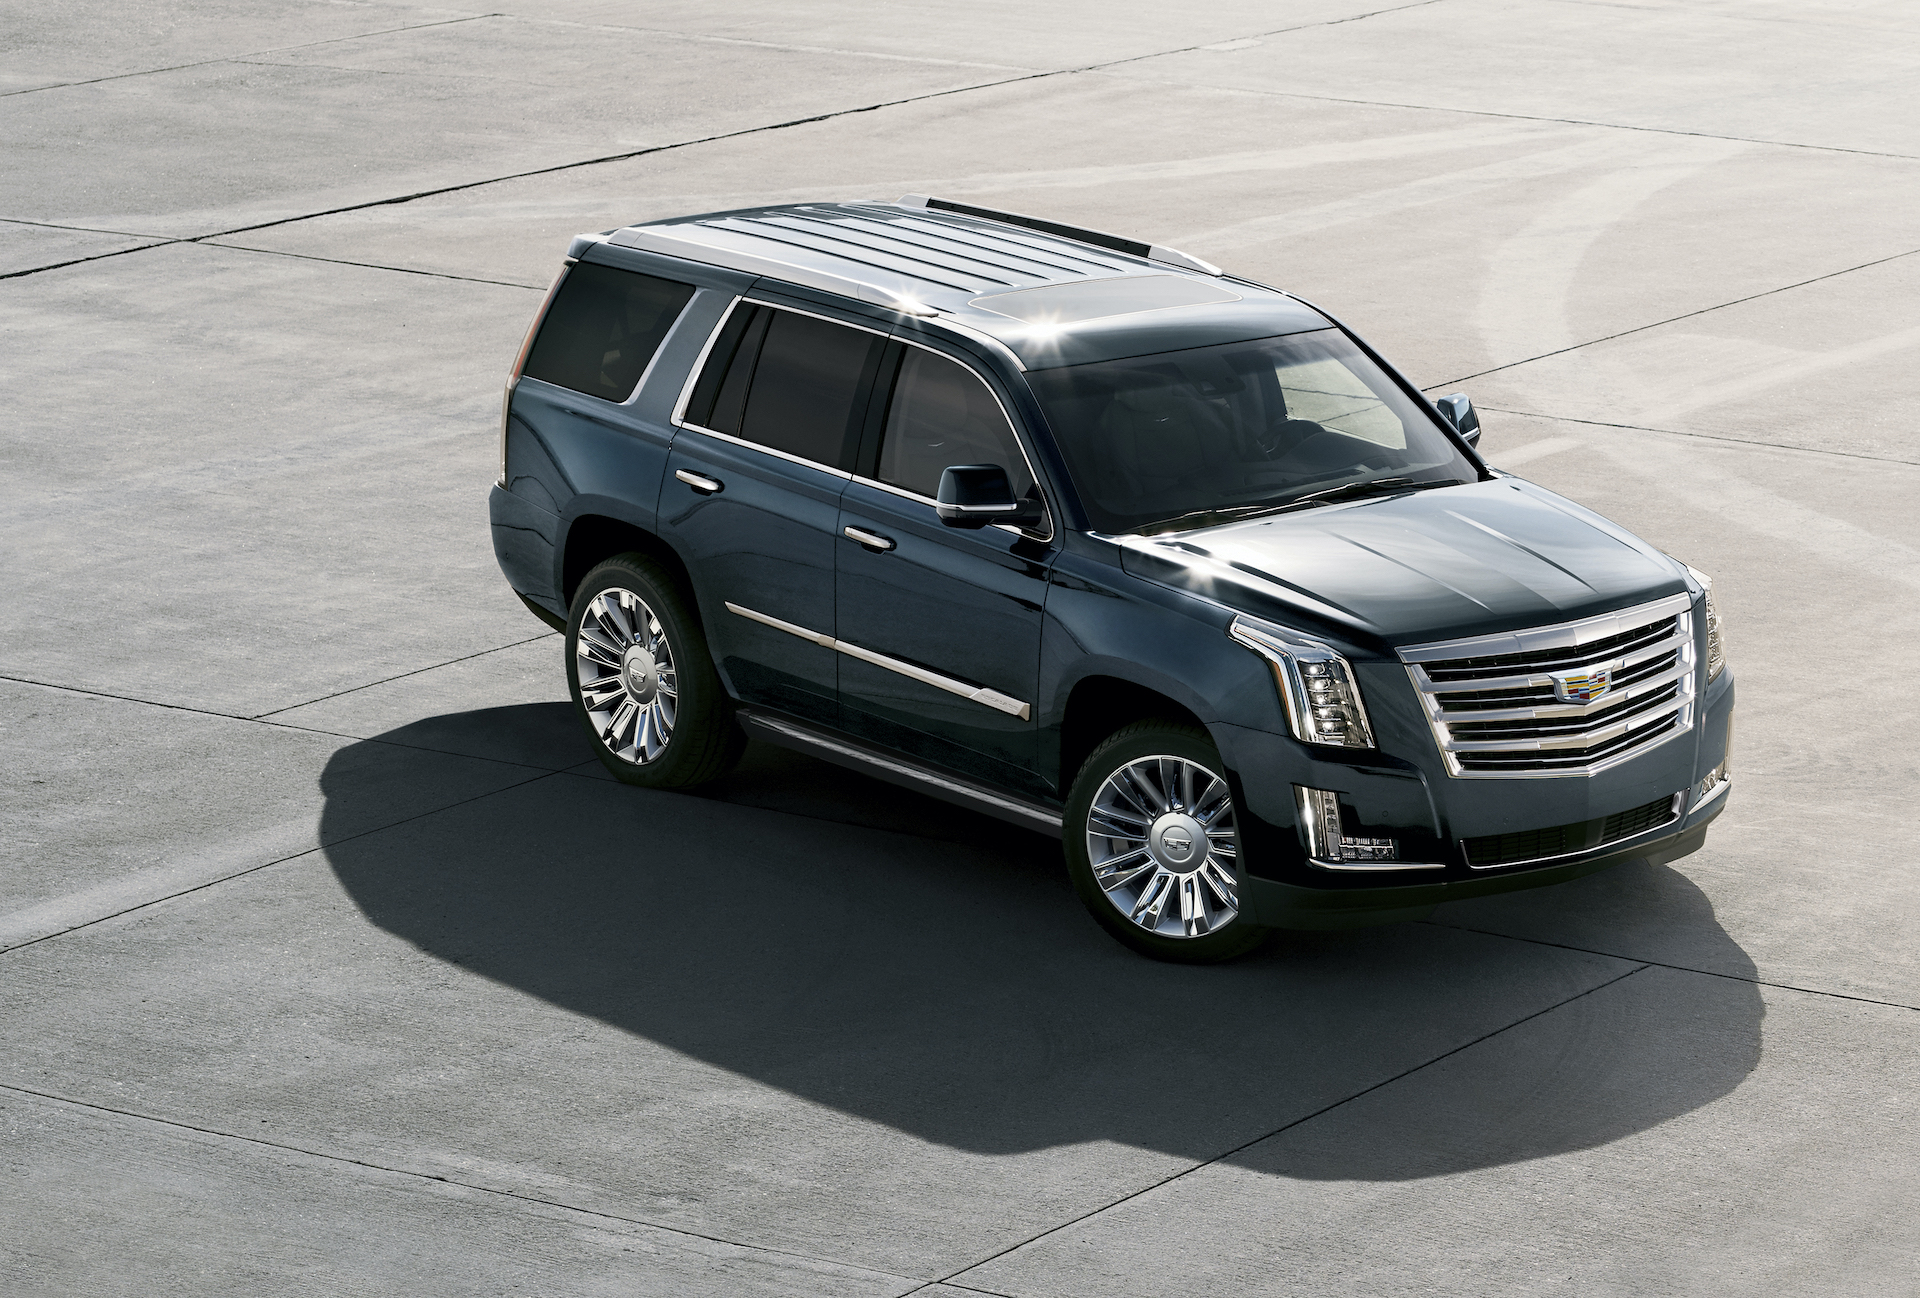 2020 Cadillac Escalade Review, Ratings, Specs, Prices, And